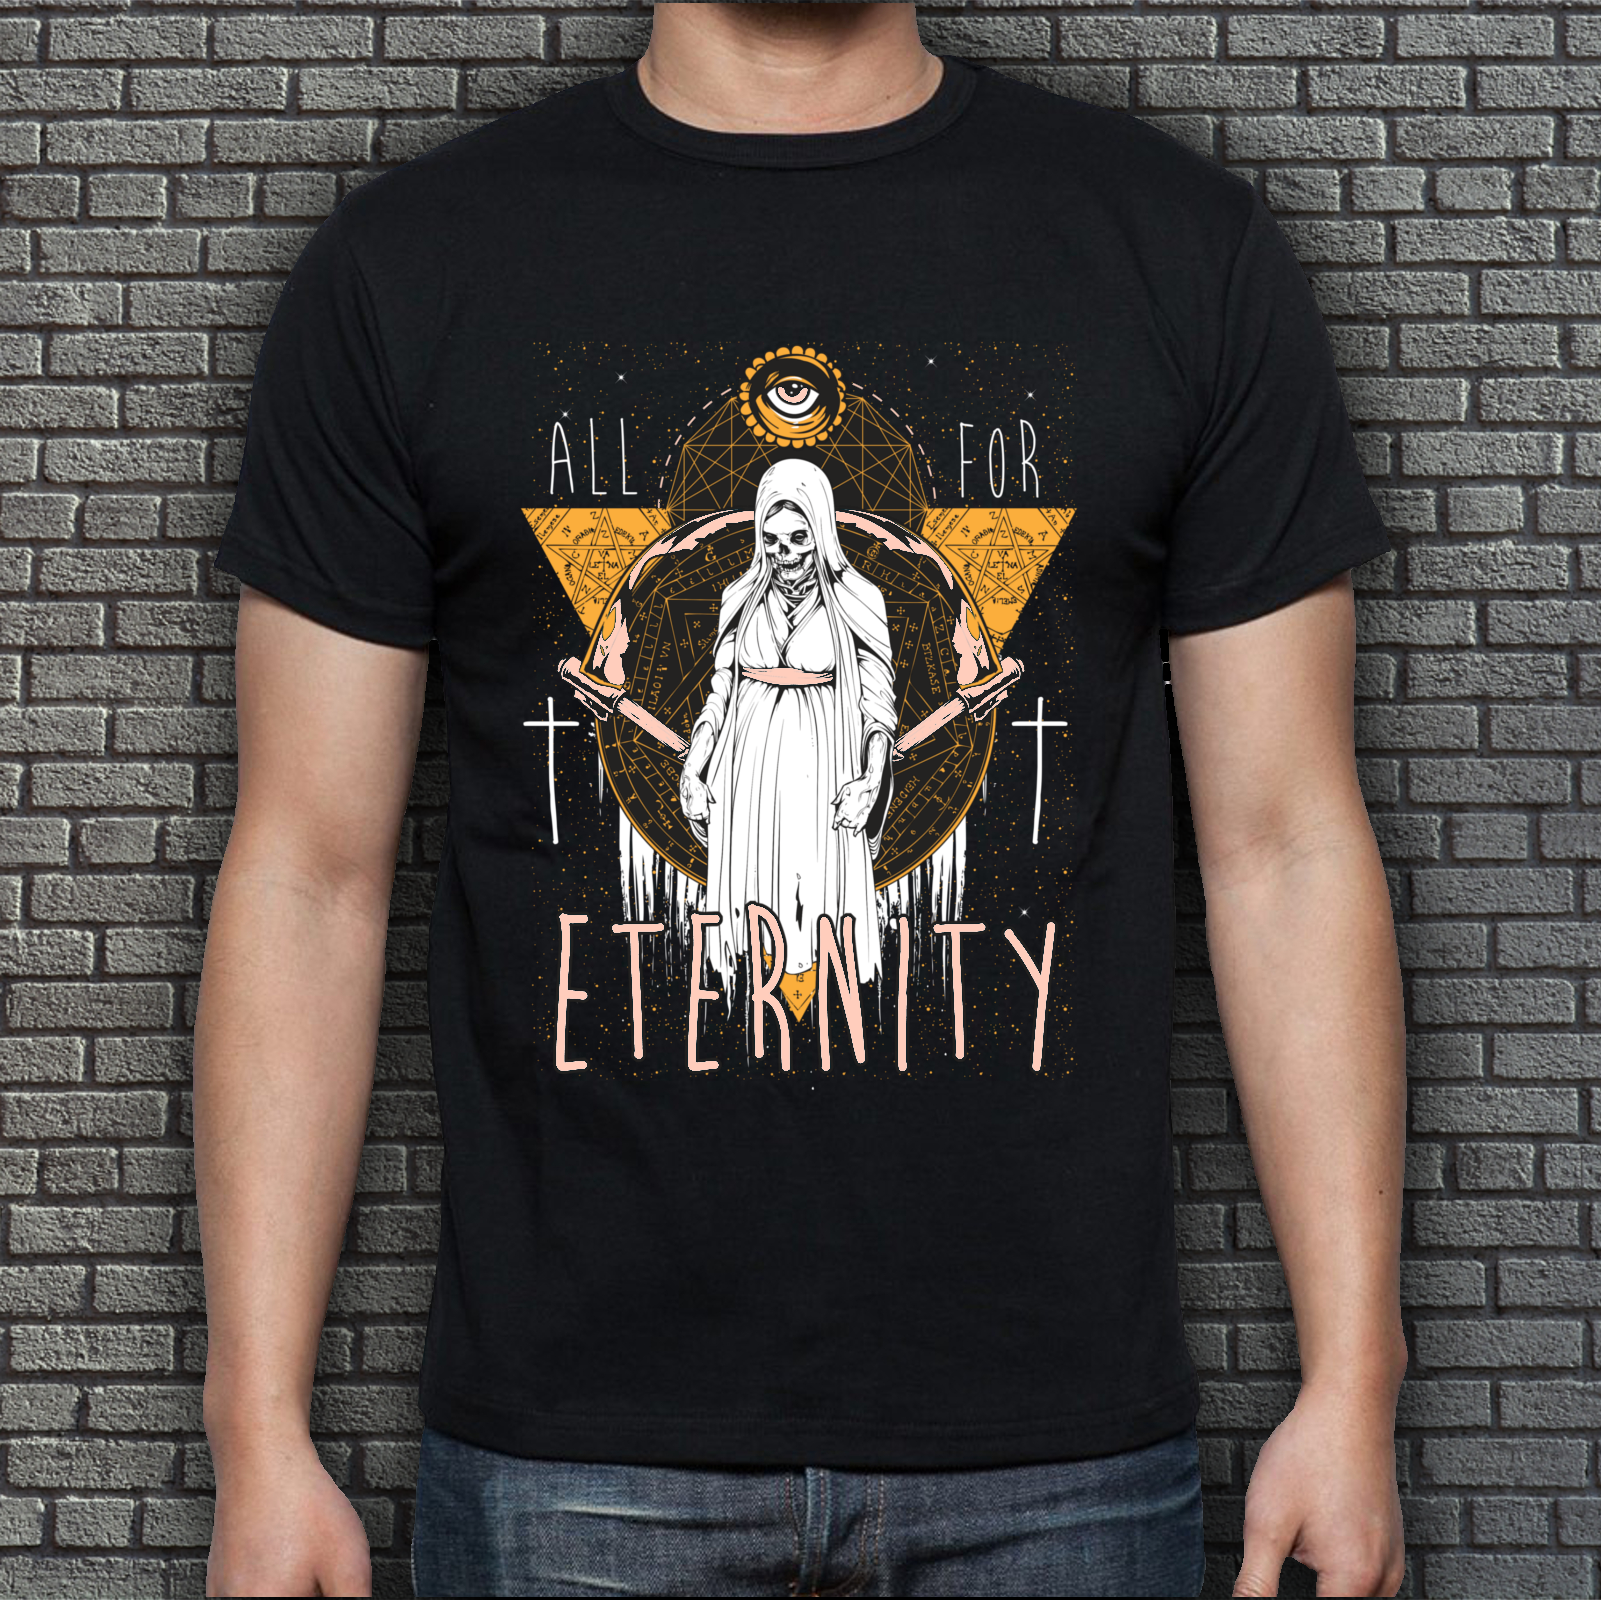 Men's Black Eternity T-Shirt